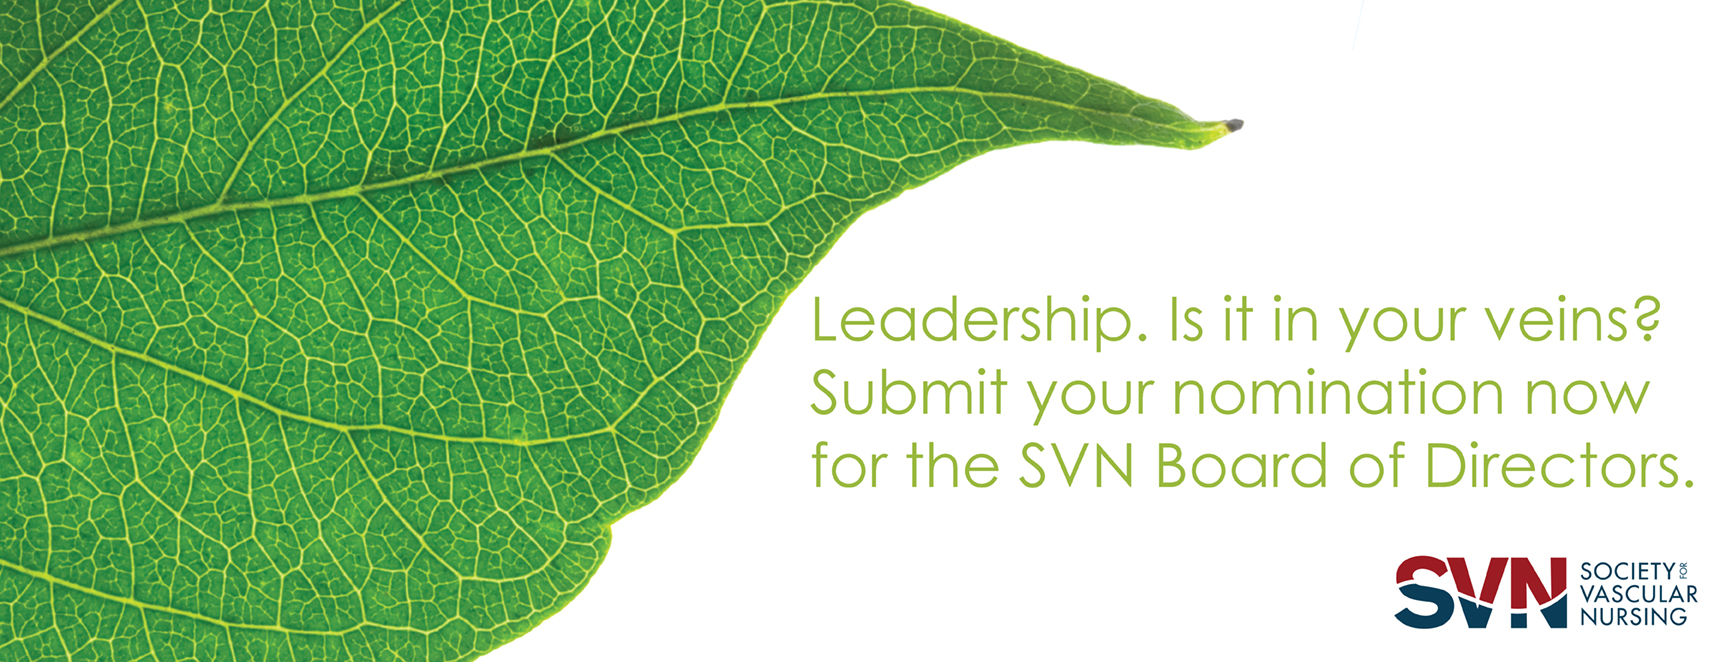 SVN Leadership 2015